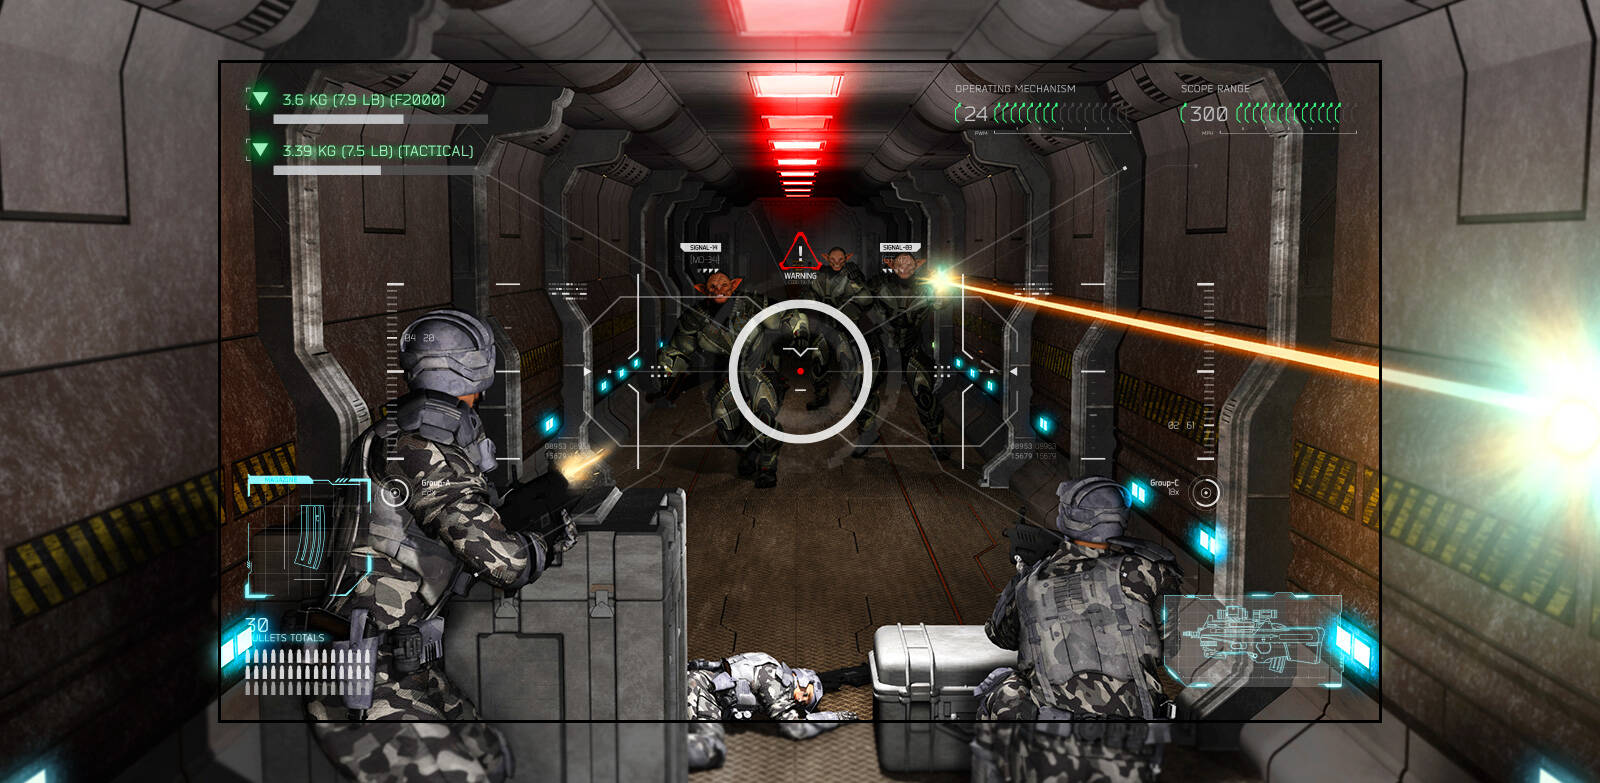 The TV shows the scene of a shooter video game in which a player is surrounded by armed aliens.